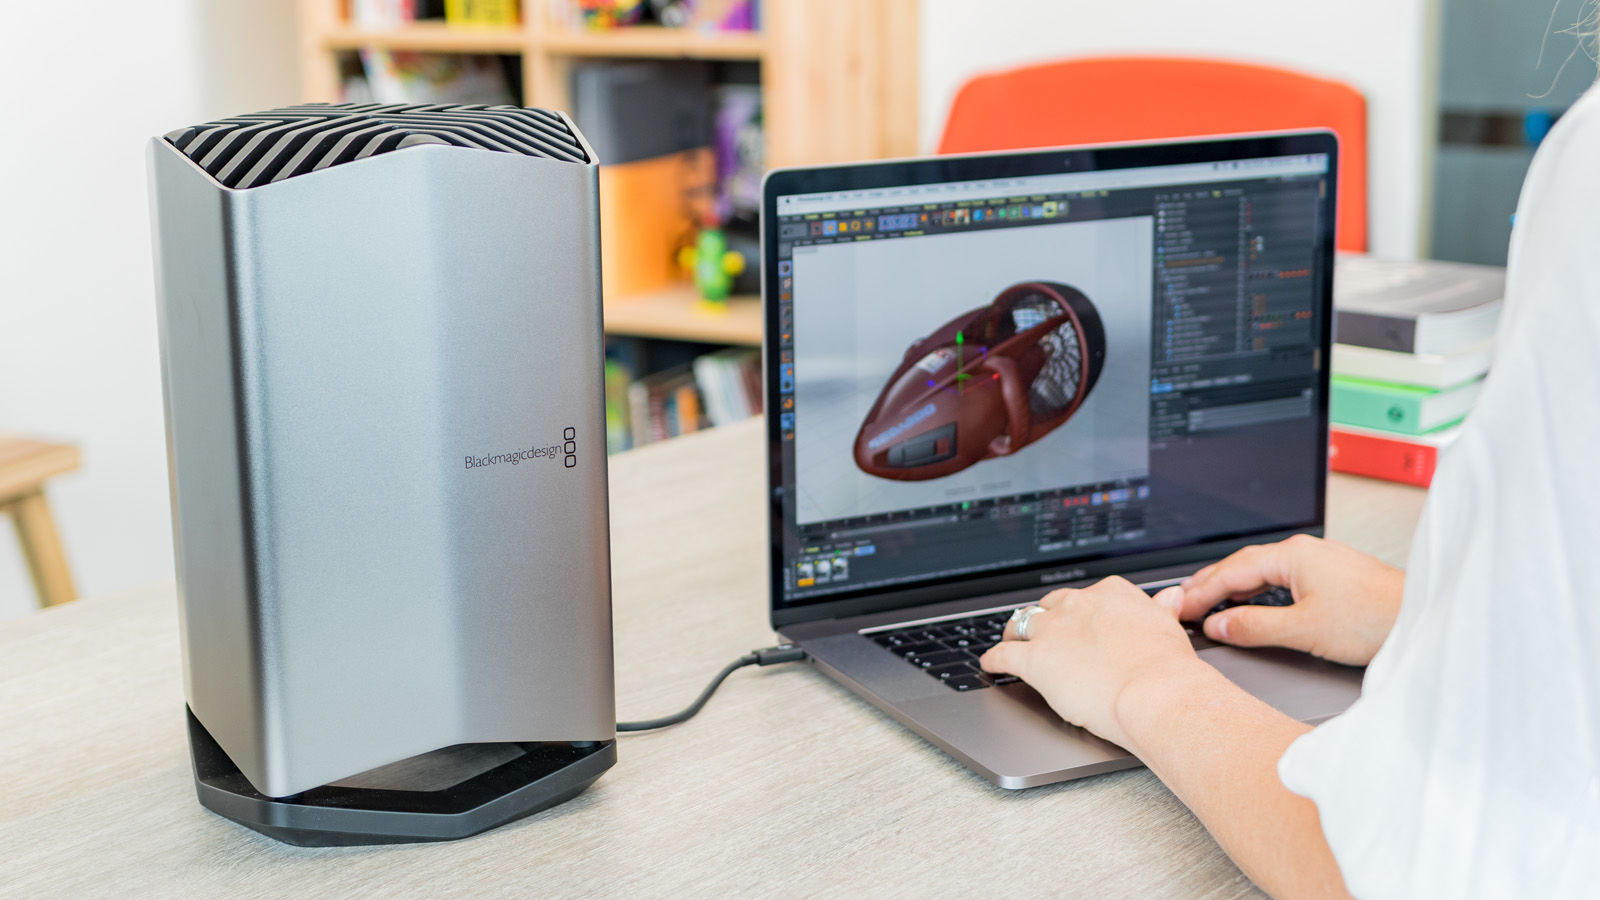 Blackmagic Design eGPU review - Review - Digital Arts